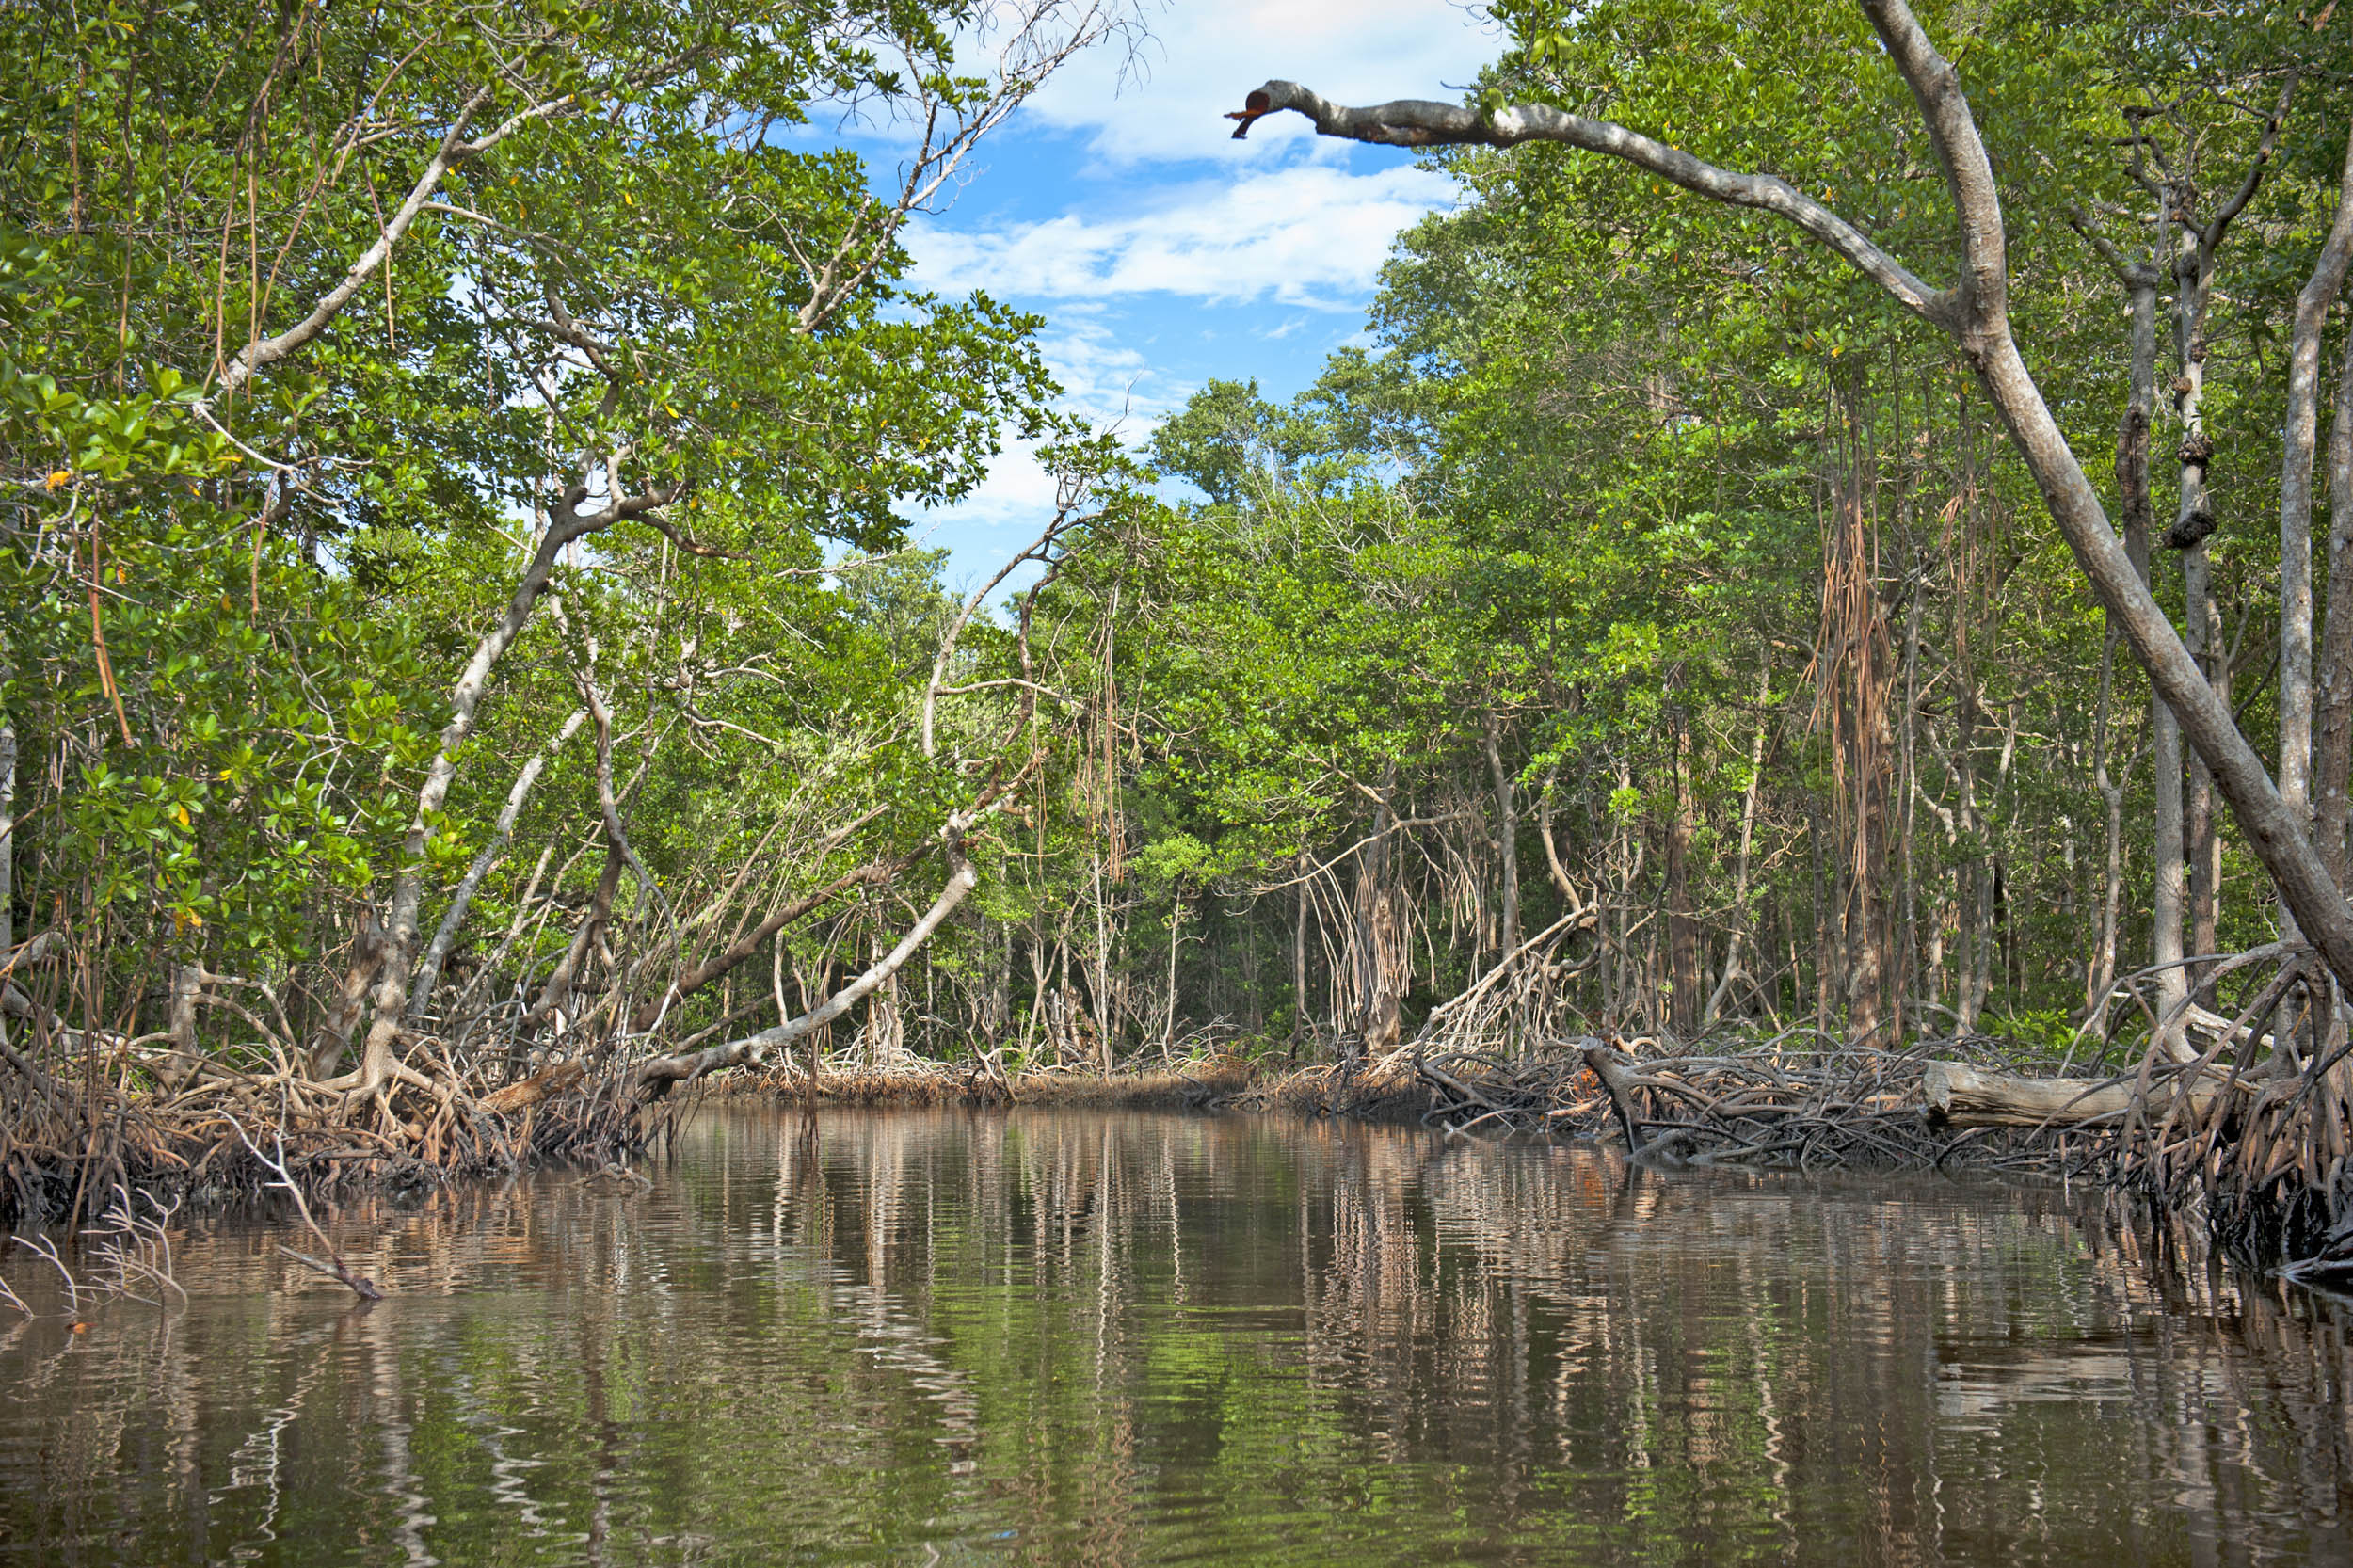 Mangrove forests in the Florida Everglades